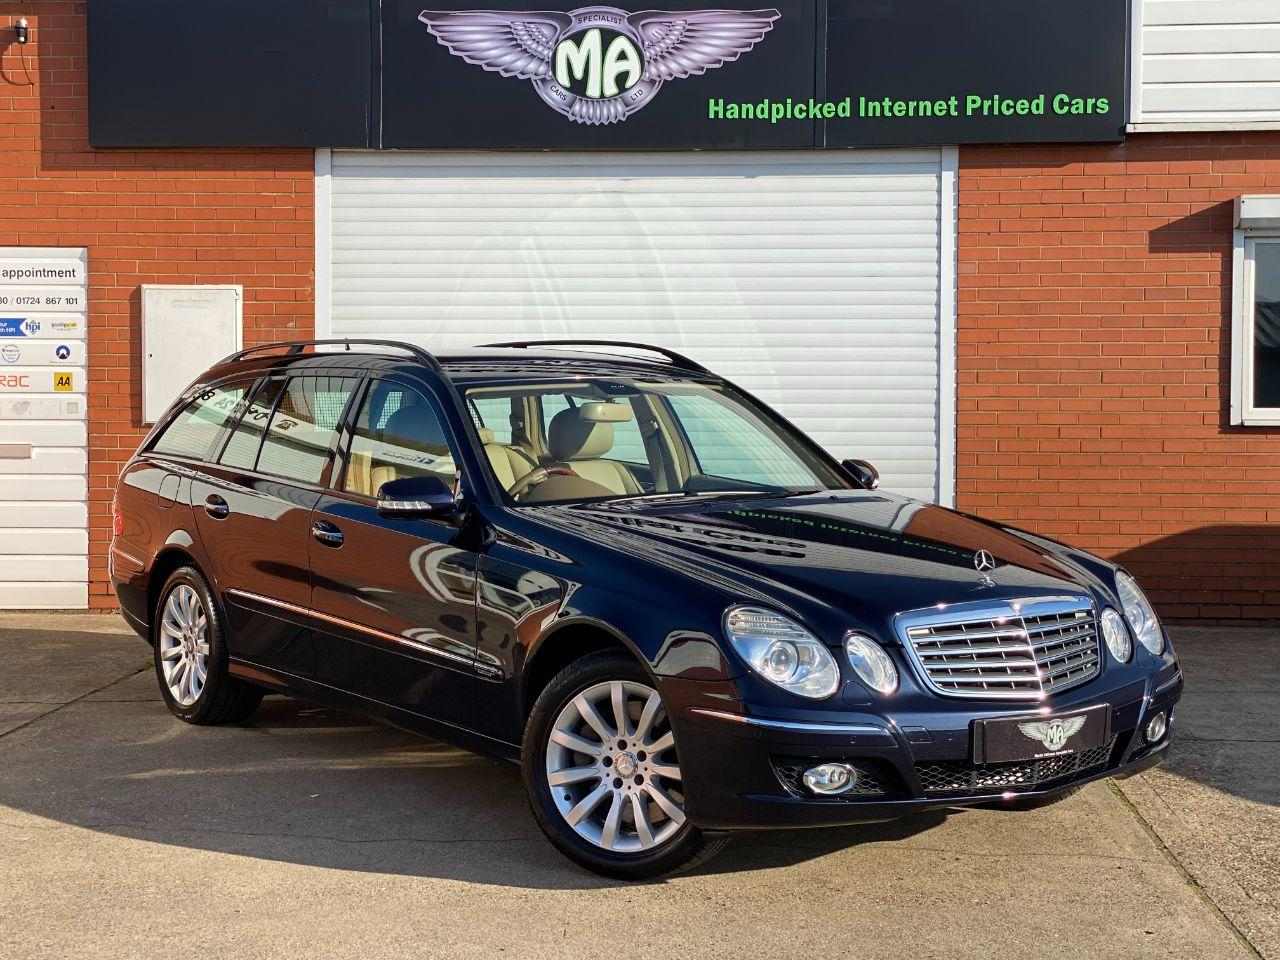 Mercedes-Benz E Class E500 5.5 V8 Elegance Estate Automatic Estate Petrol Tansanite Blue Metallic